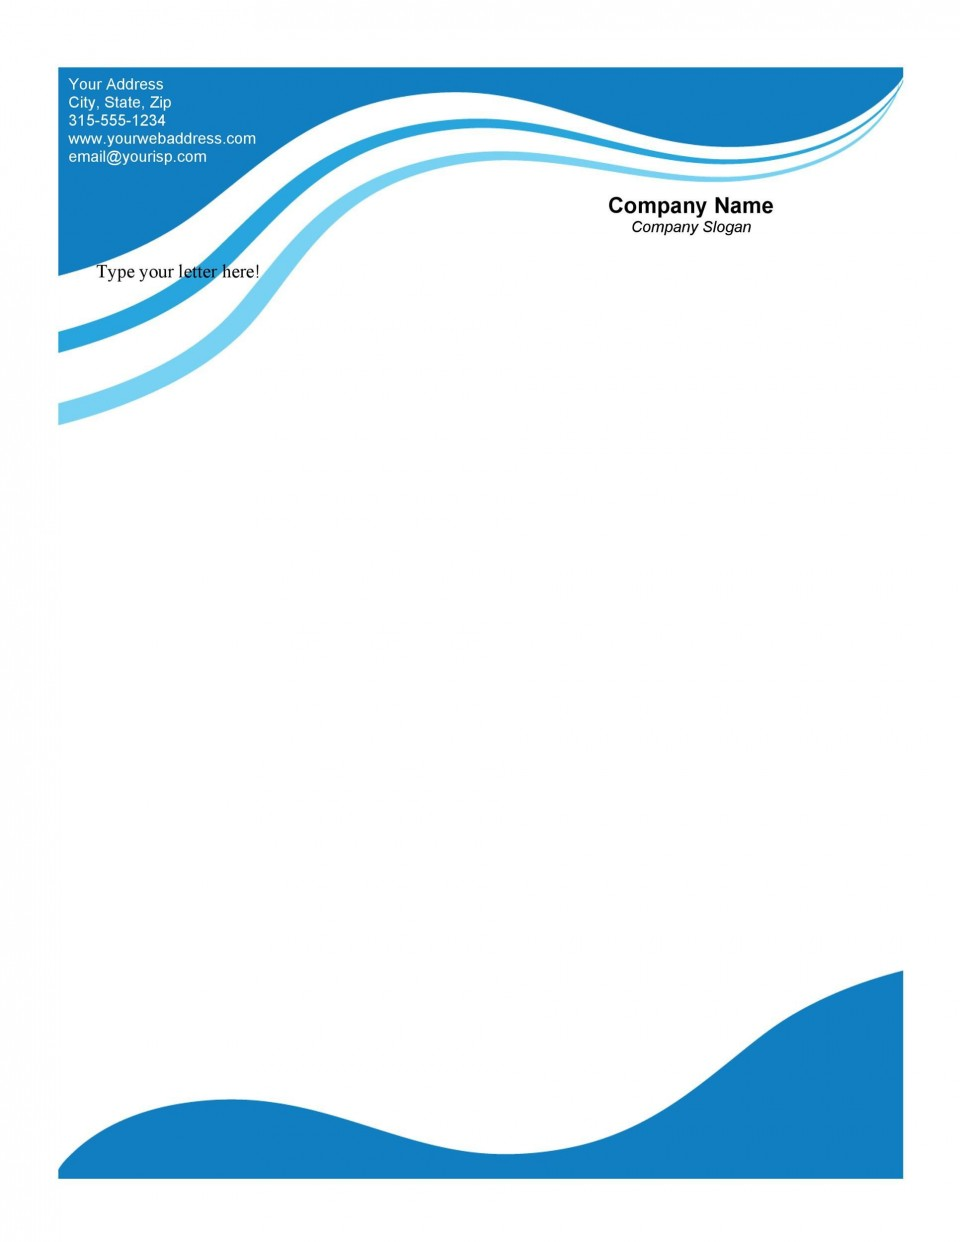 007 Excellent Letterhead Template Free Download Doc High Def  Company Format960